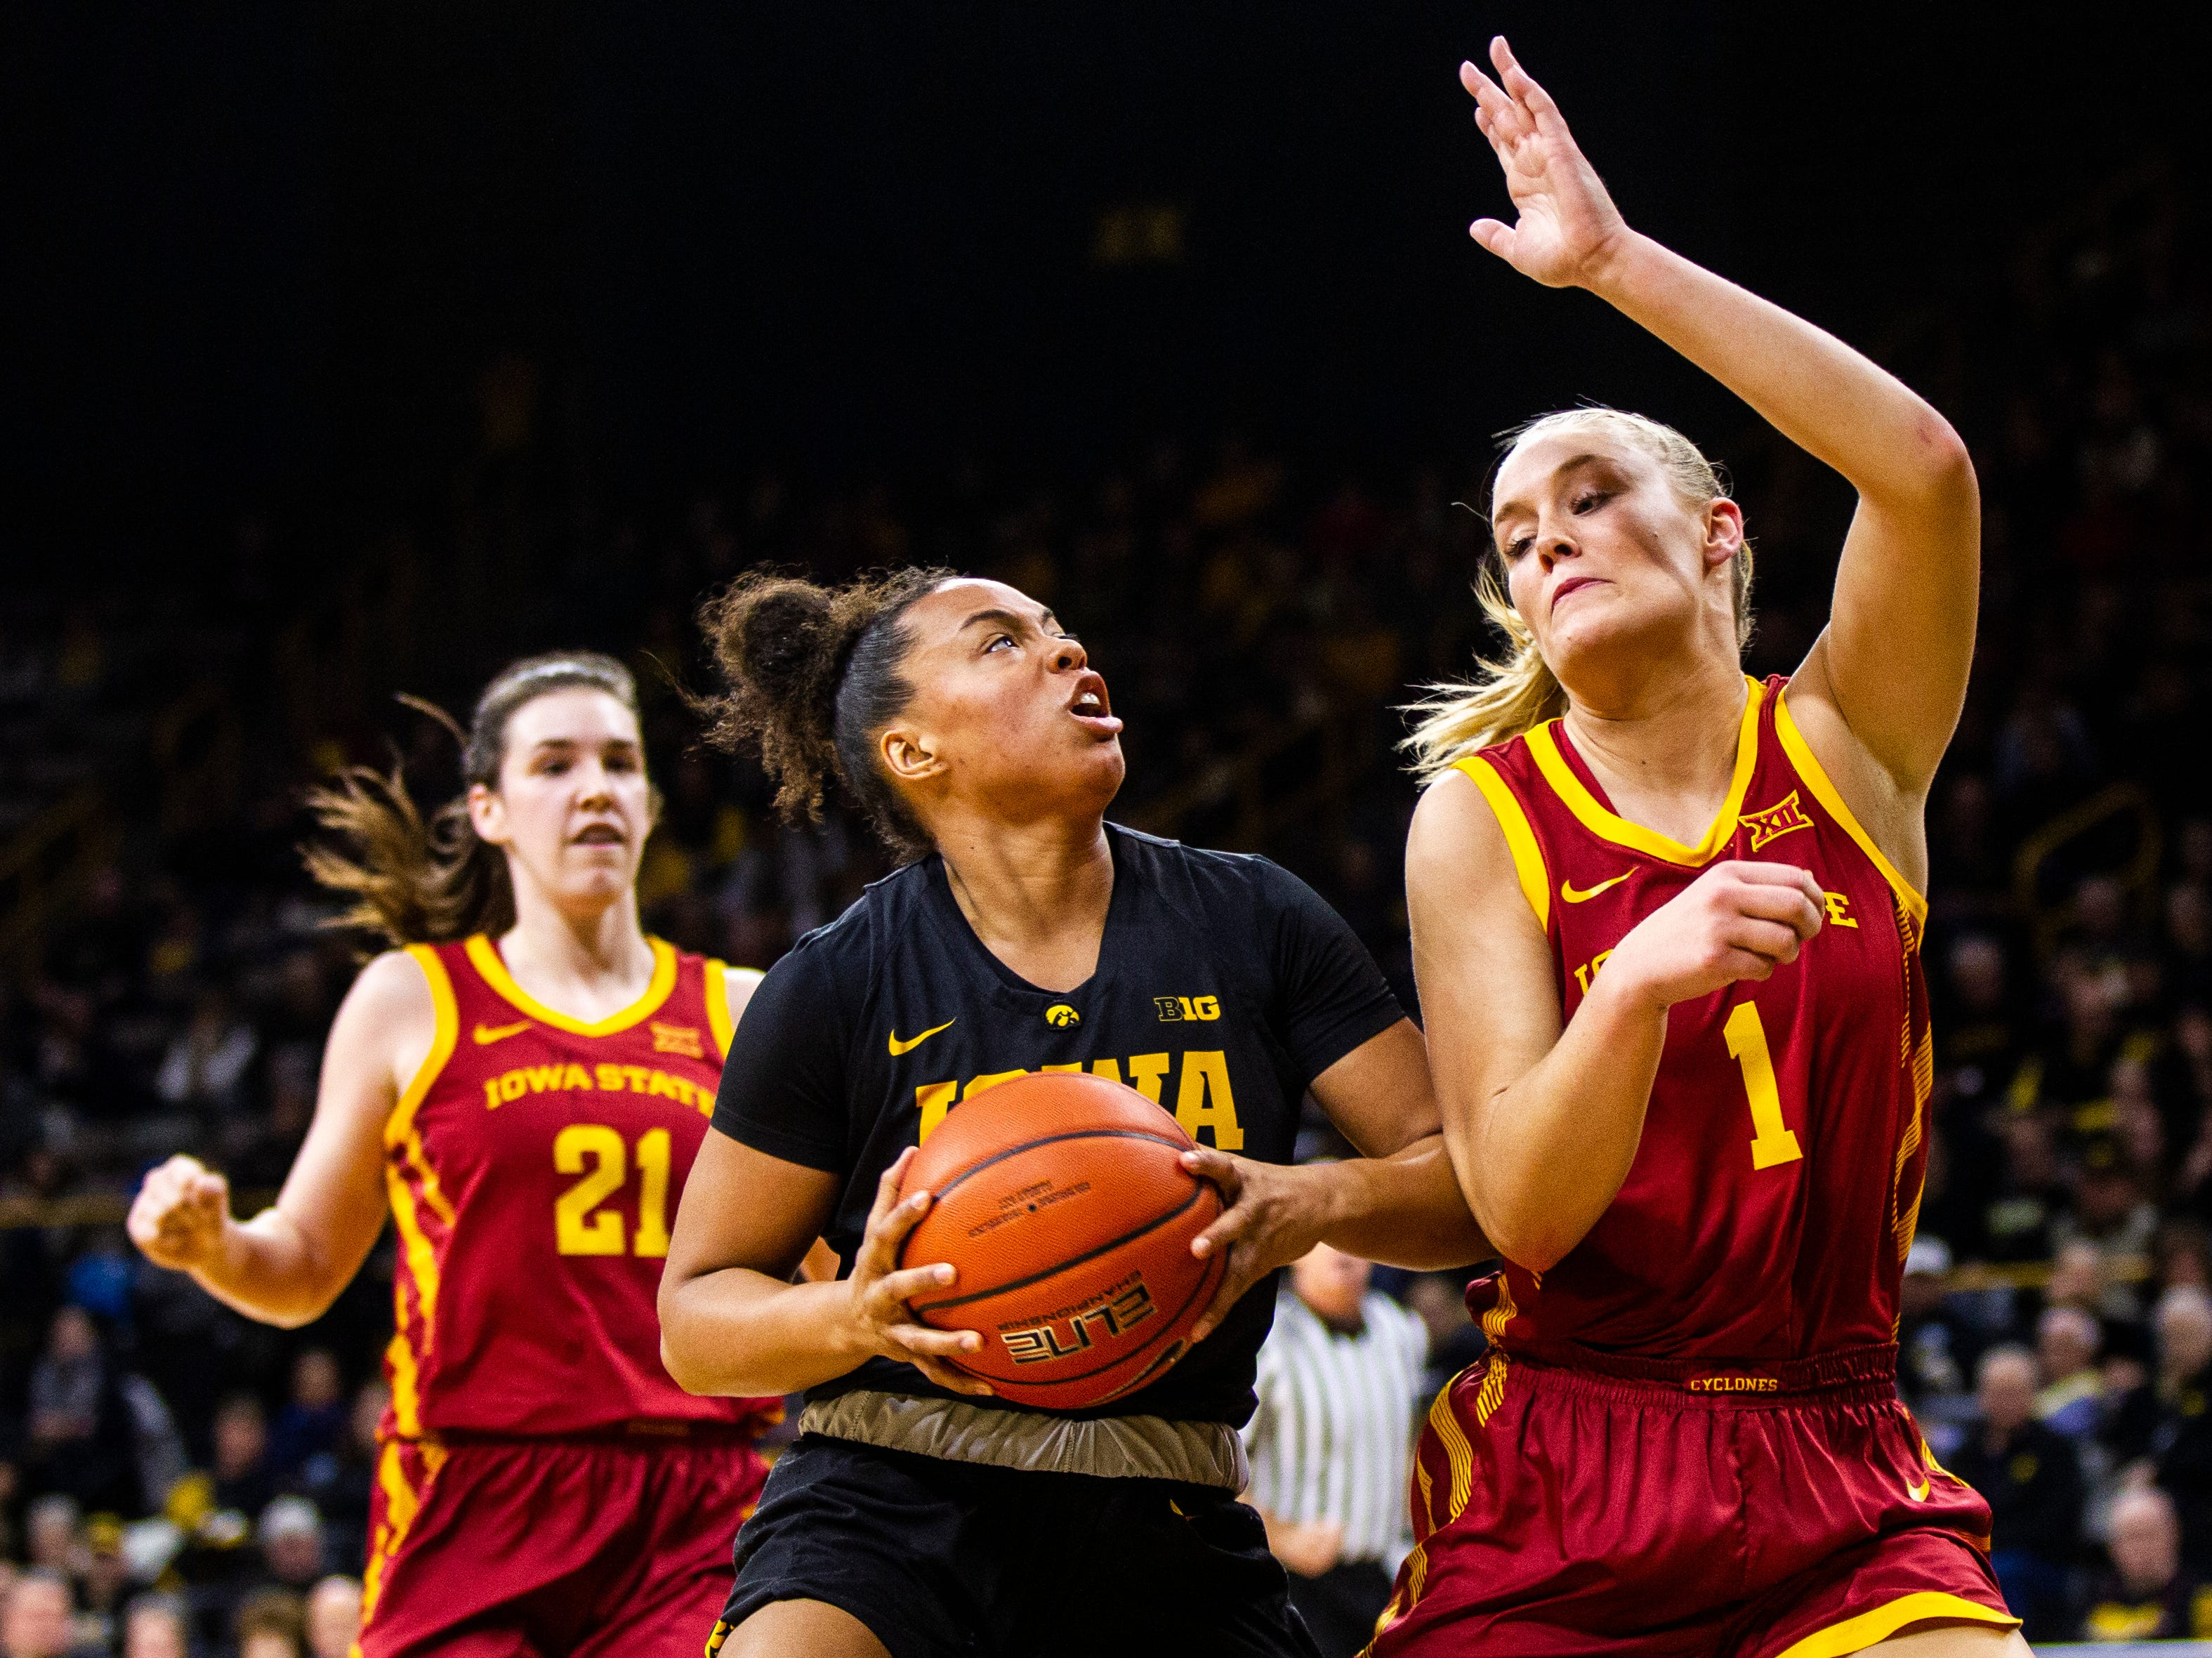 Iowa guard Alexis Sevillian (5) drives to the basket past Iowa State forward Madison Wise (1) during a Cy-Hawk series NCAA women's basketball game on Wednesday, Dec. 5, 2018, at Carver-Hawkeye Arena in Iowa City.